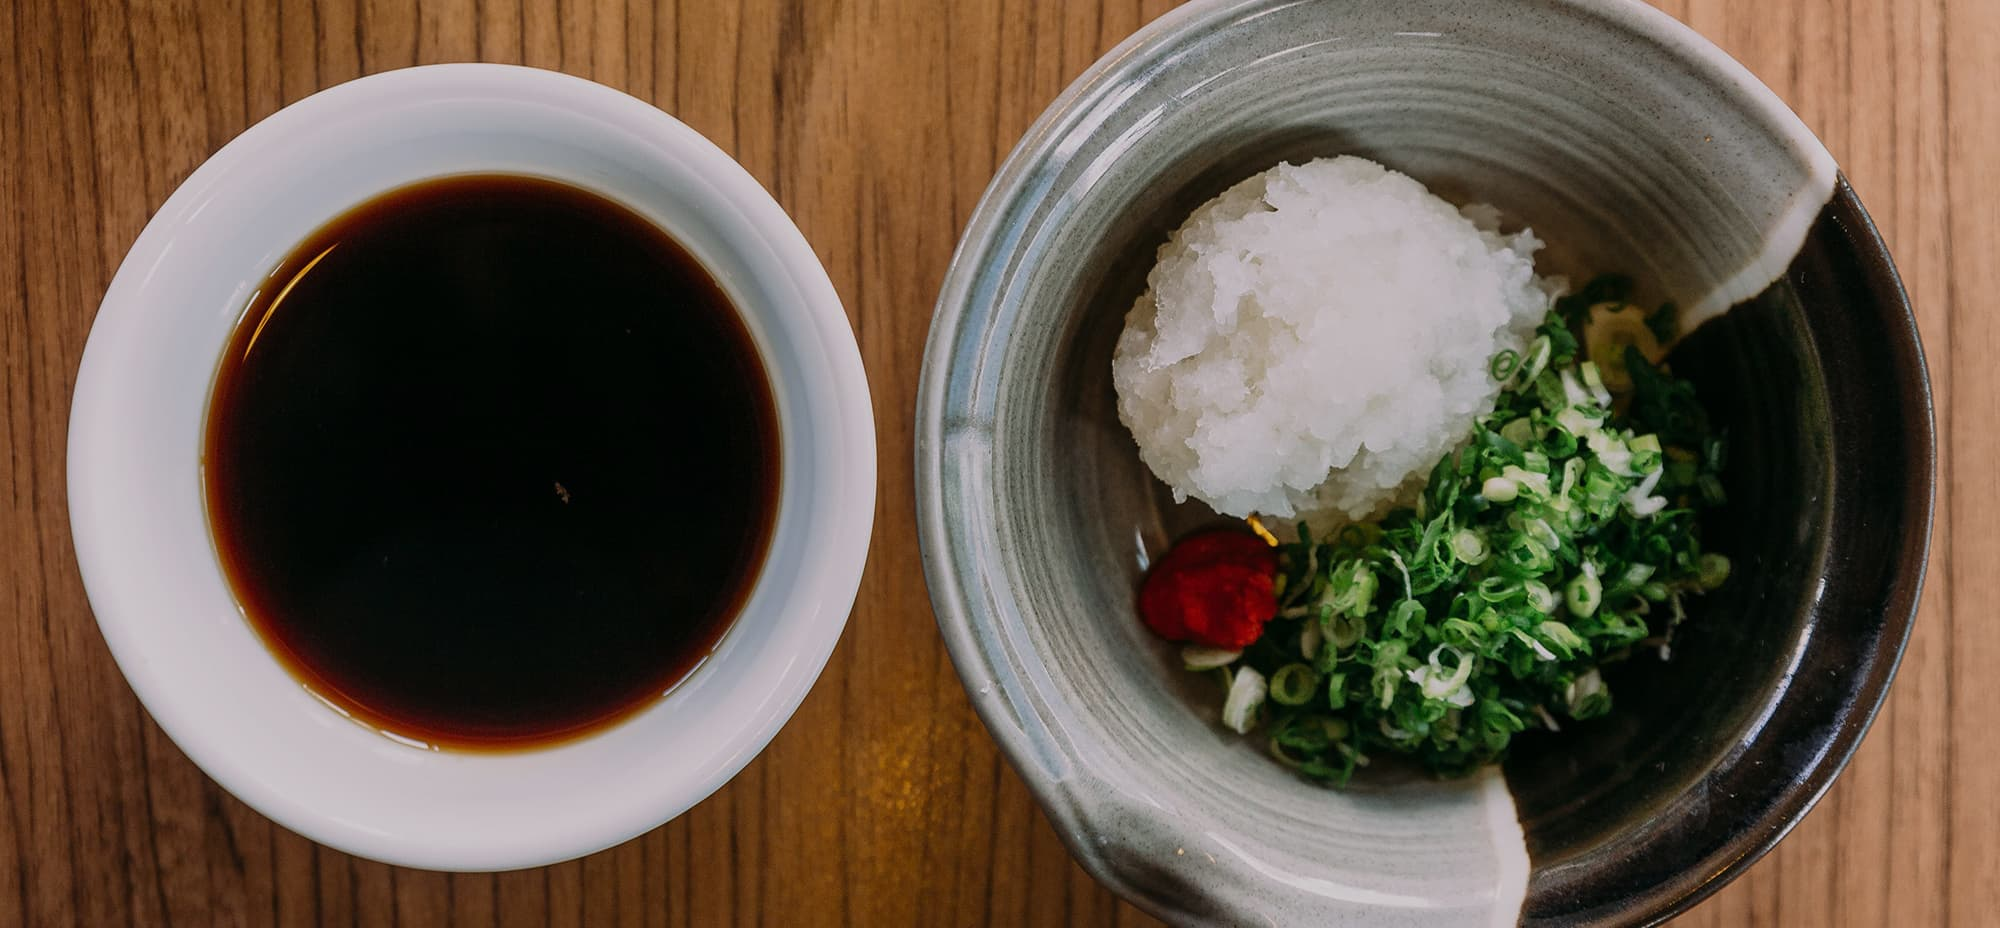 Image of a sauce in a bowl next to a serving of boiled rice